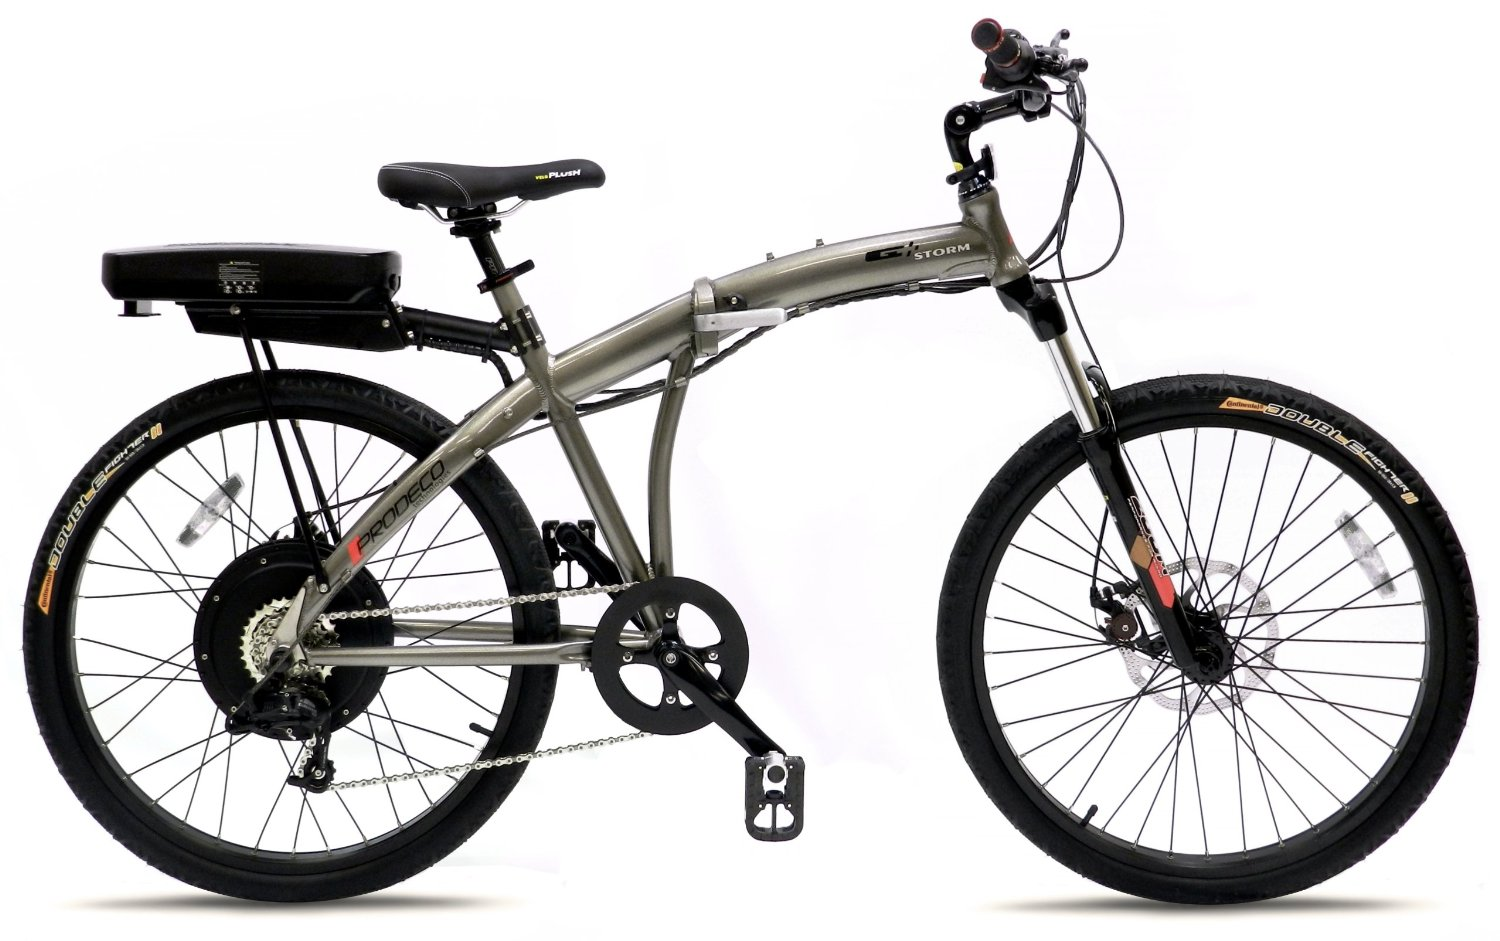 Prodeco V3 Storm 8 Speed Folding Electric Bike Review